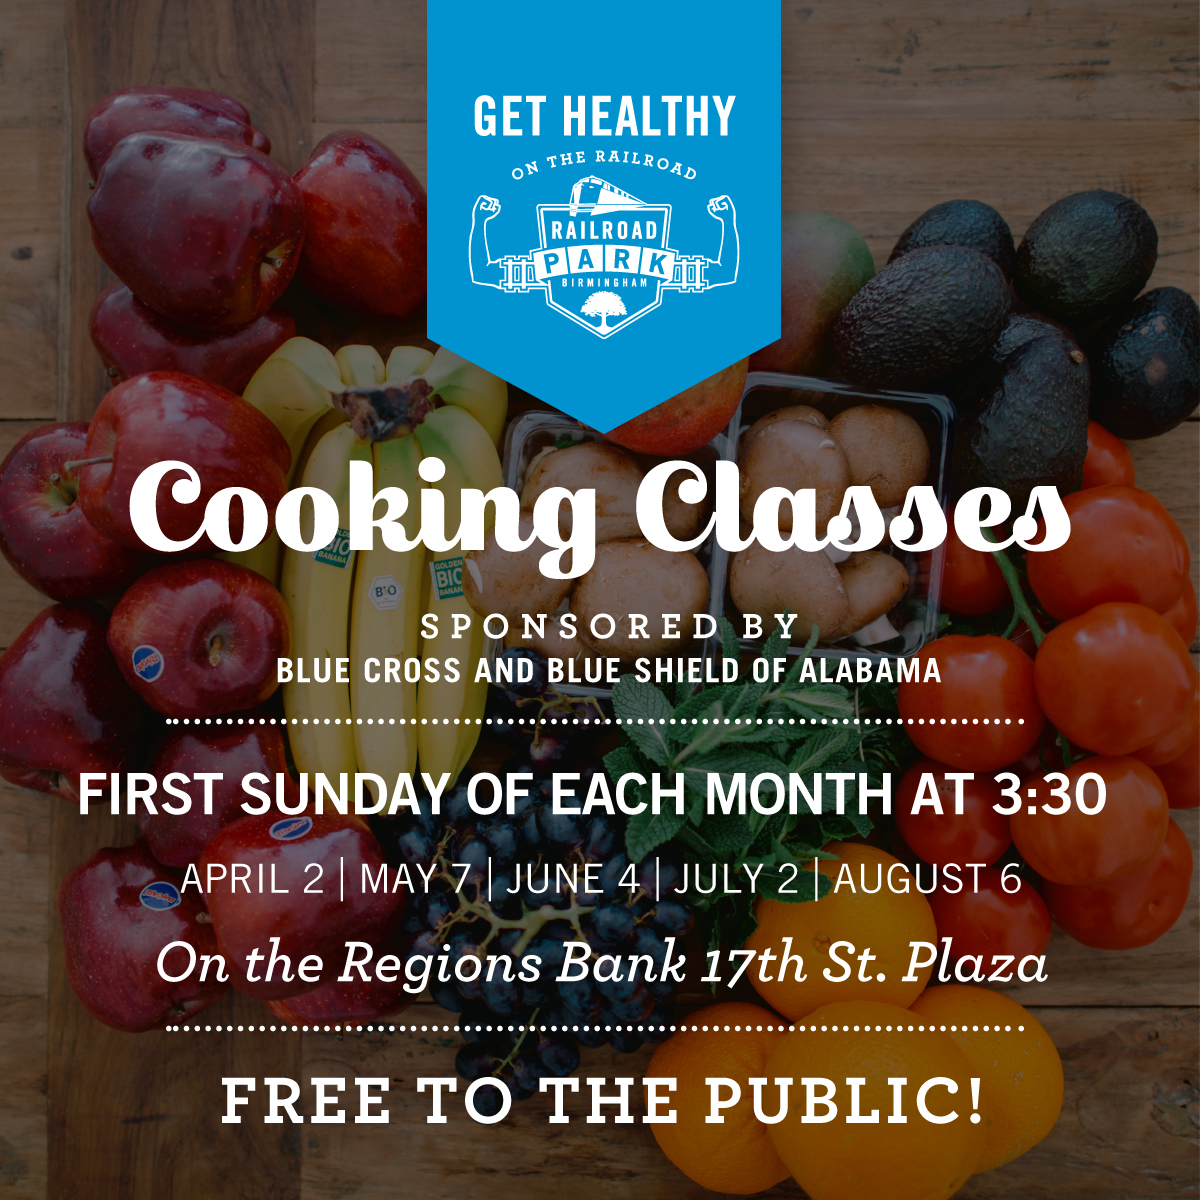 Get Healthy on the Railroad Cooking Classes sponsored by Blue Cross Blue Shield of Alabama